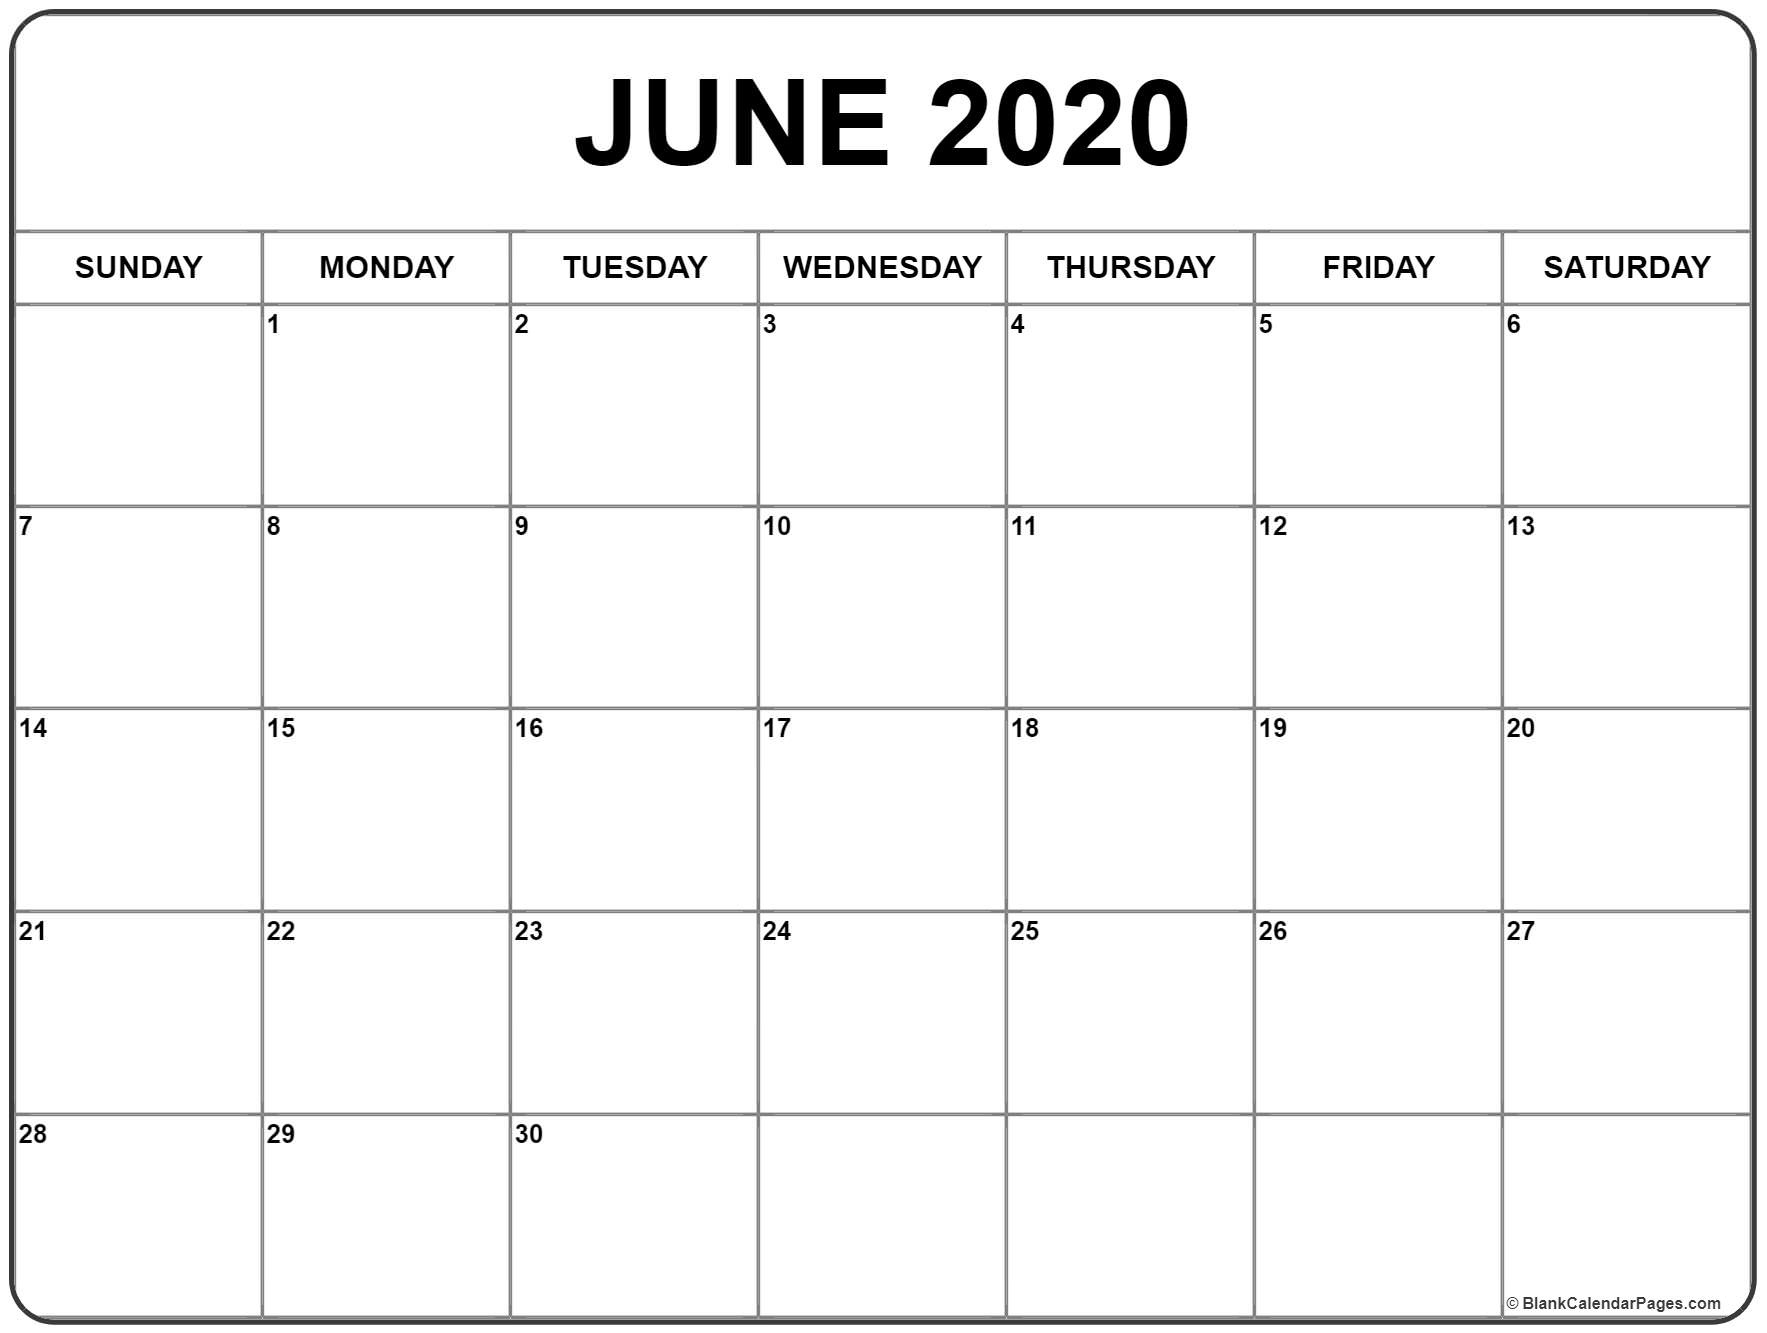 June 2020 Calendar | Free Printable Monthly Calendars_Blank Calendar June 2020